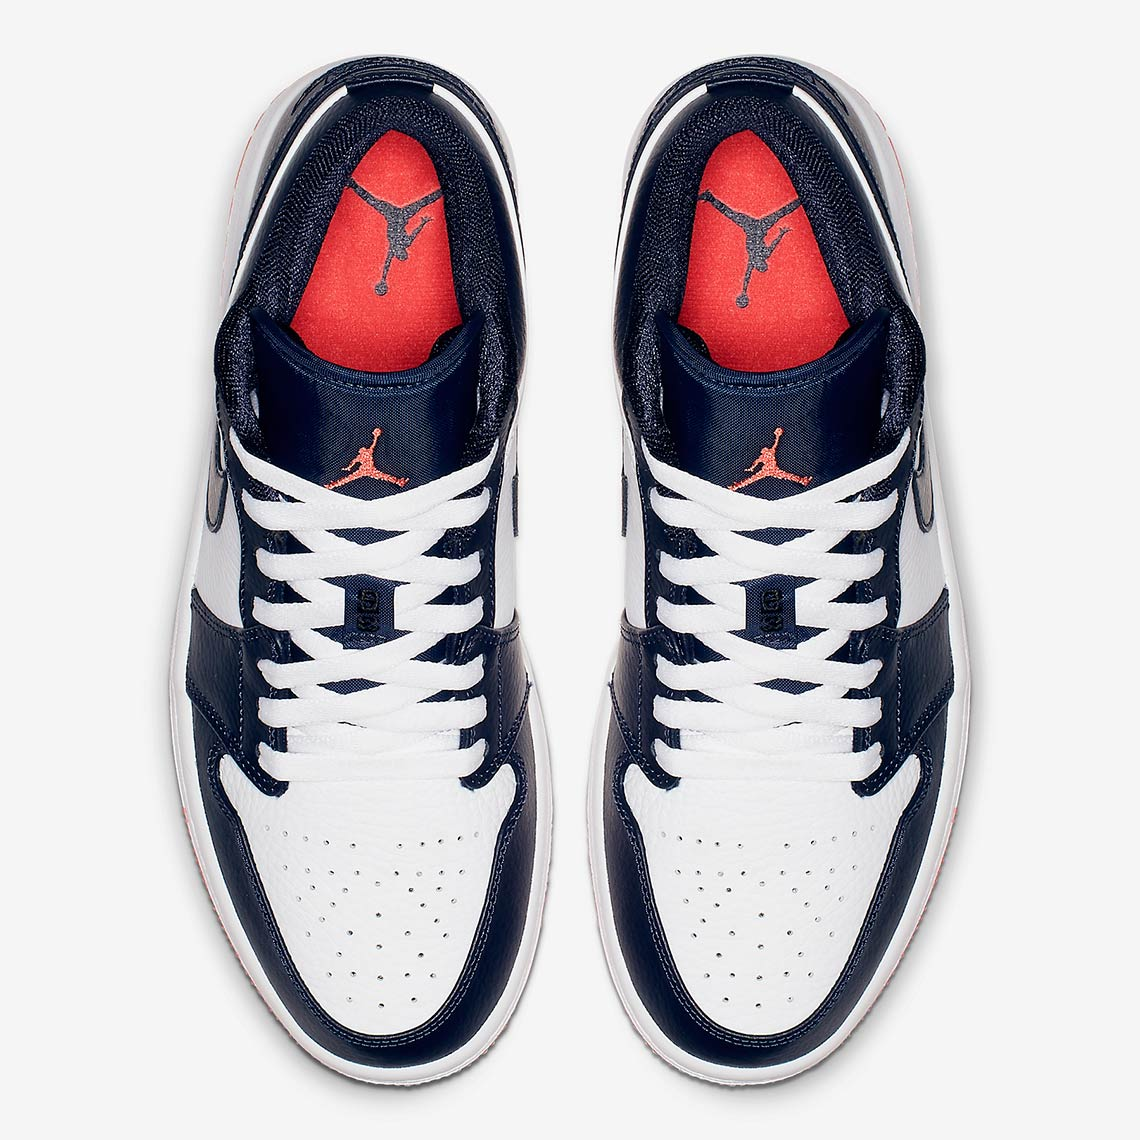 b7140e099c8 Air Jordan 1 Low  100. Color  Obsidian Ember Glow-White Style Code  553558- 481. Where to Buy. eBayAvailable Now